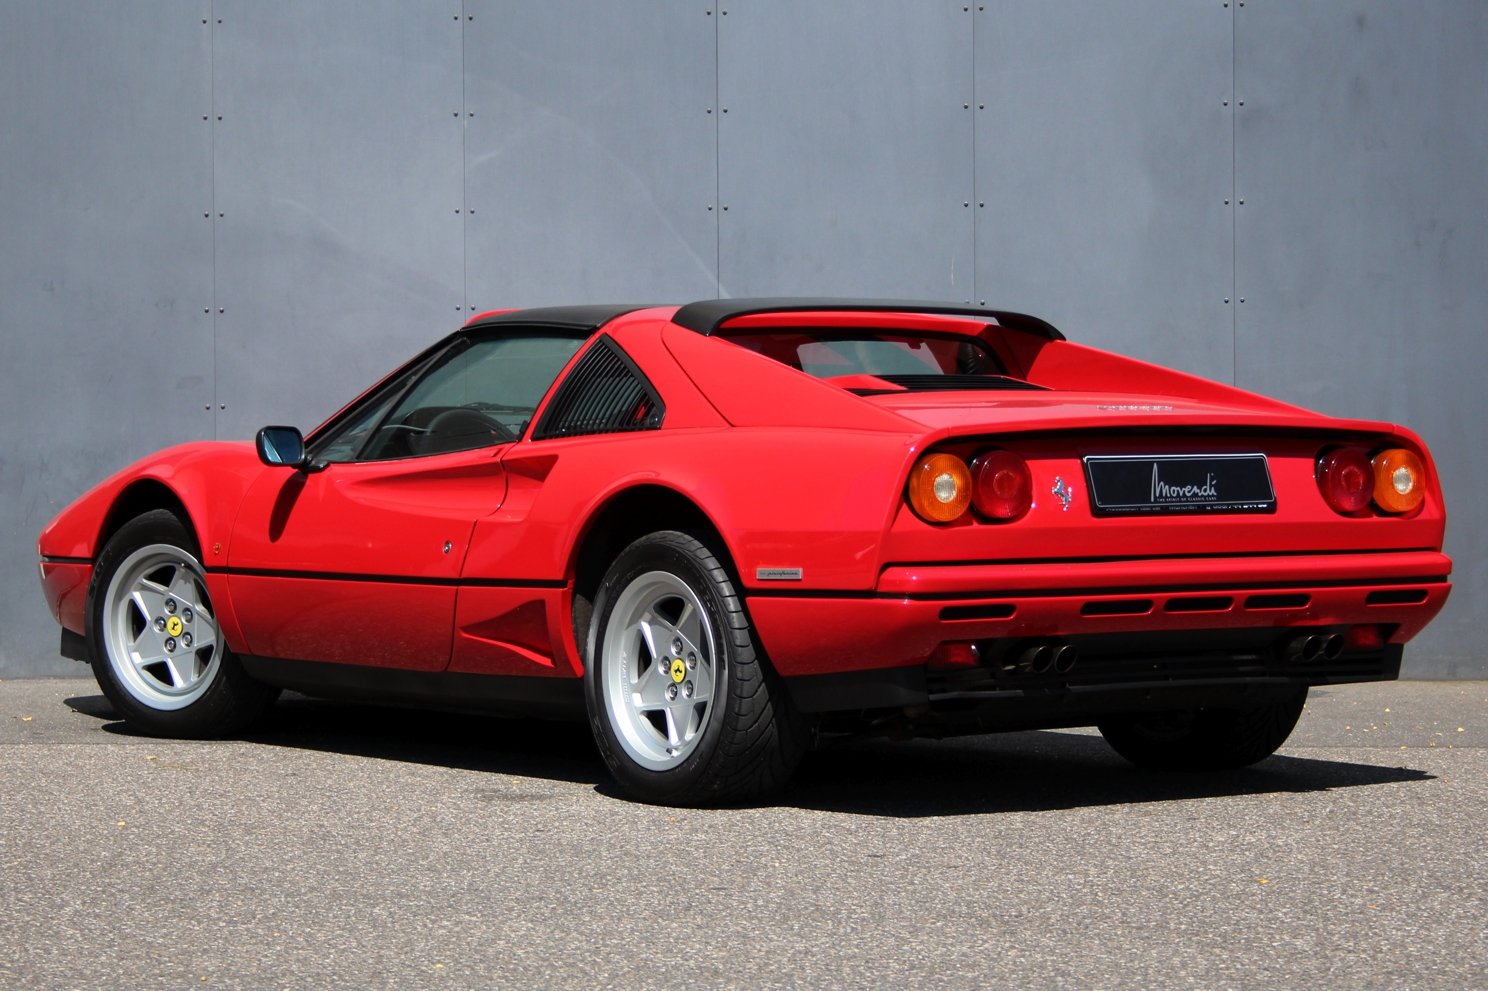 1986 Ferrari 208 GTB Turbo LHD For Sale (picture 2 of 6)